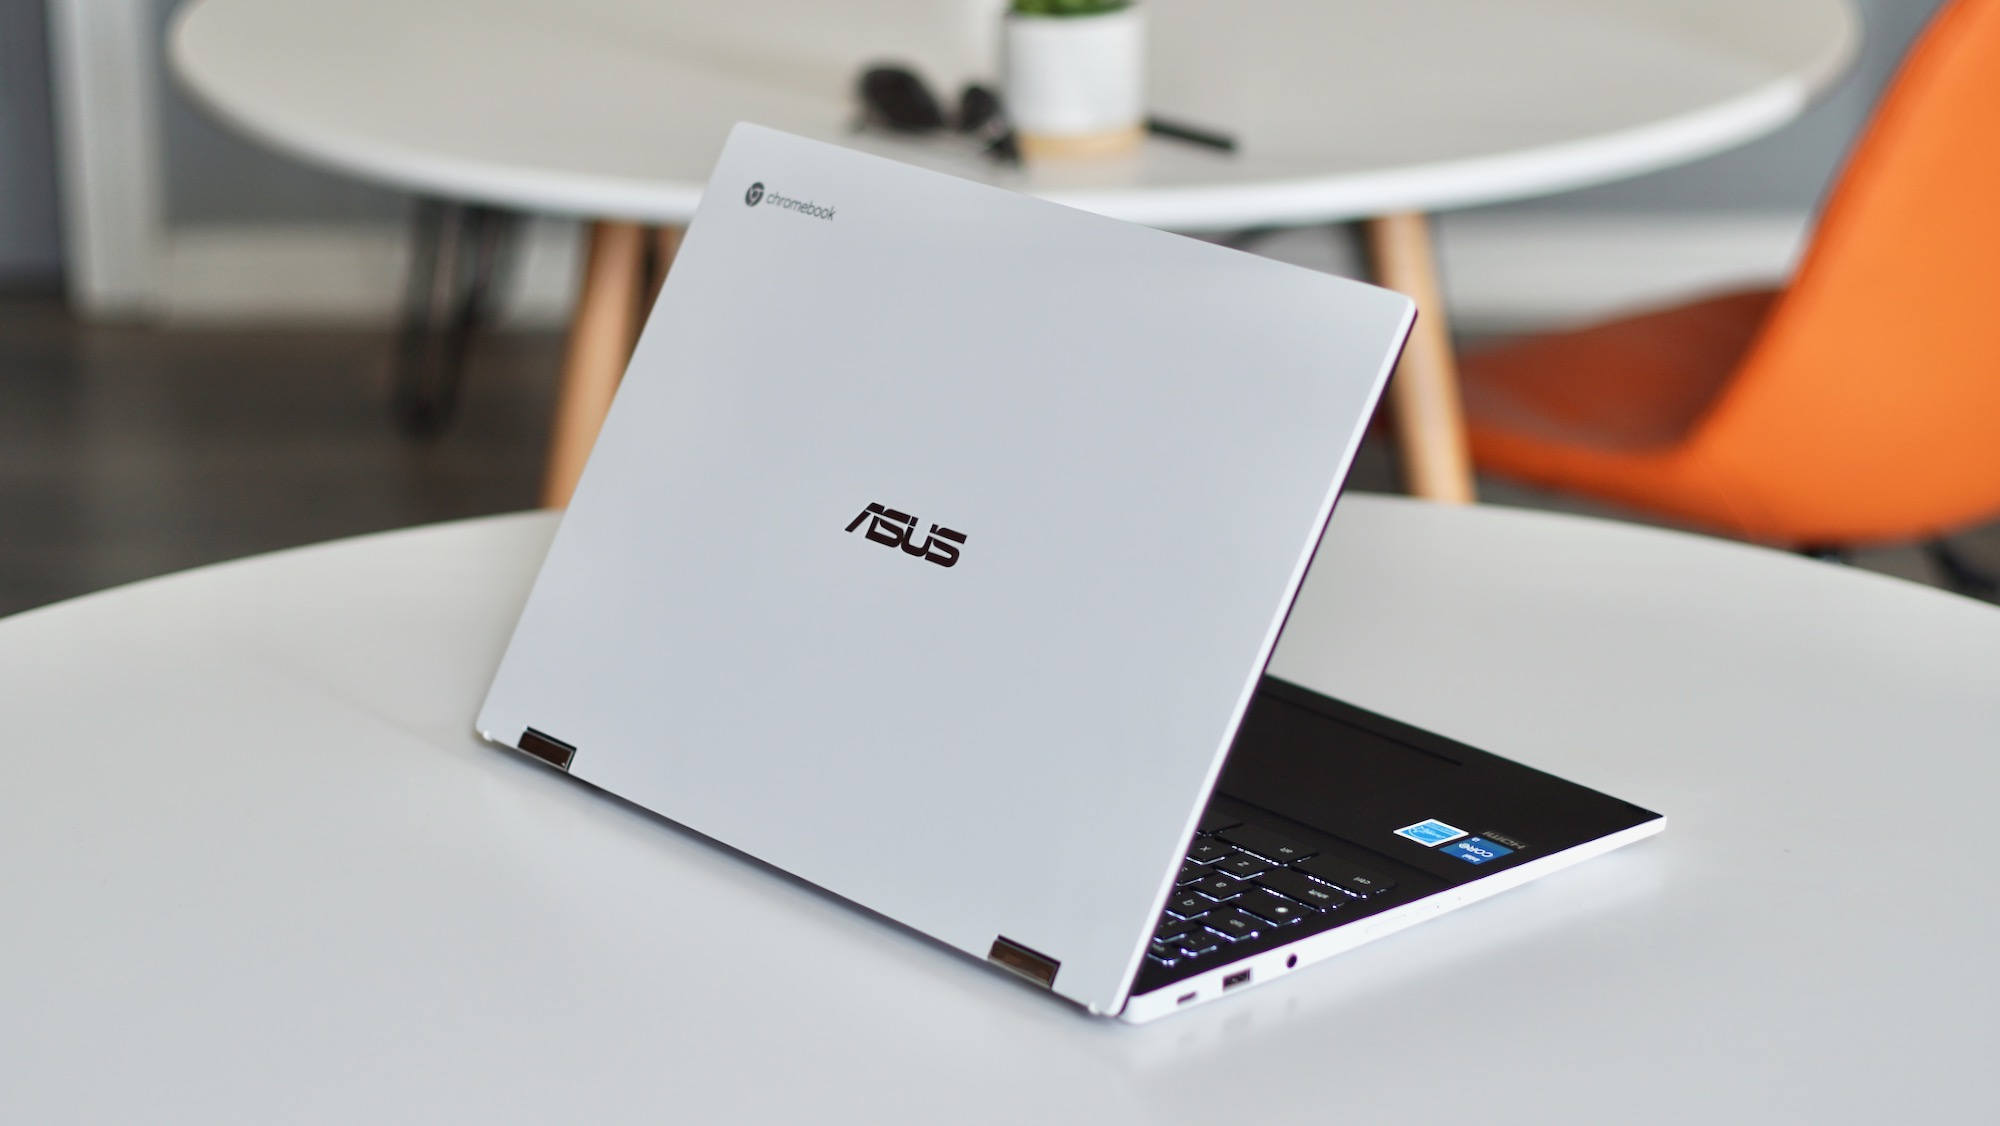 Grab the powerful ASUS Chromebook CX5 for as little as $419 ($150 off)